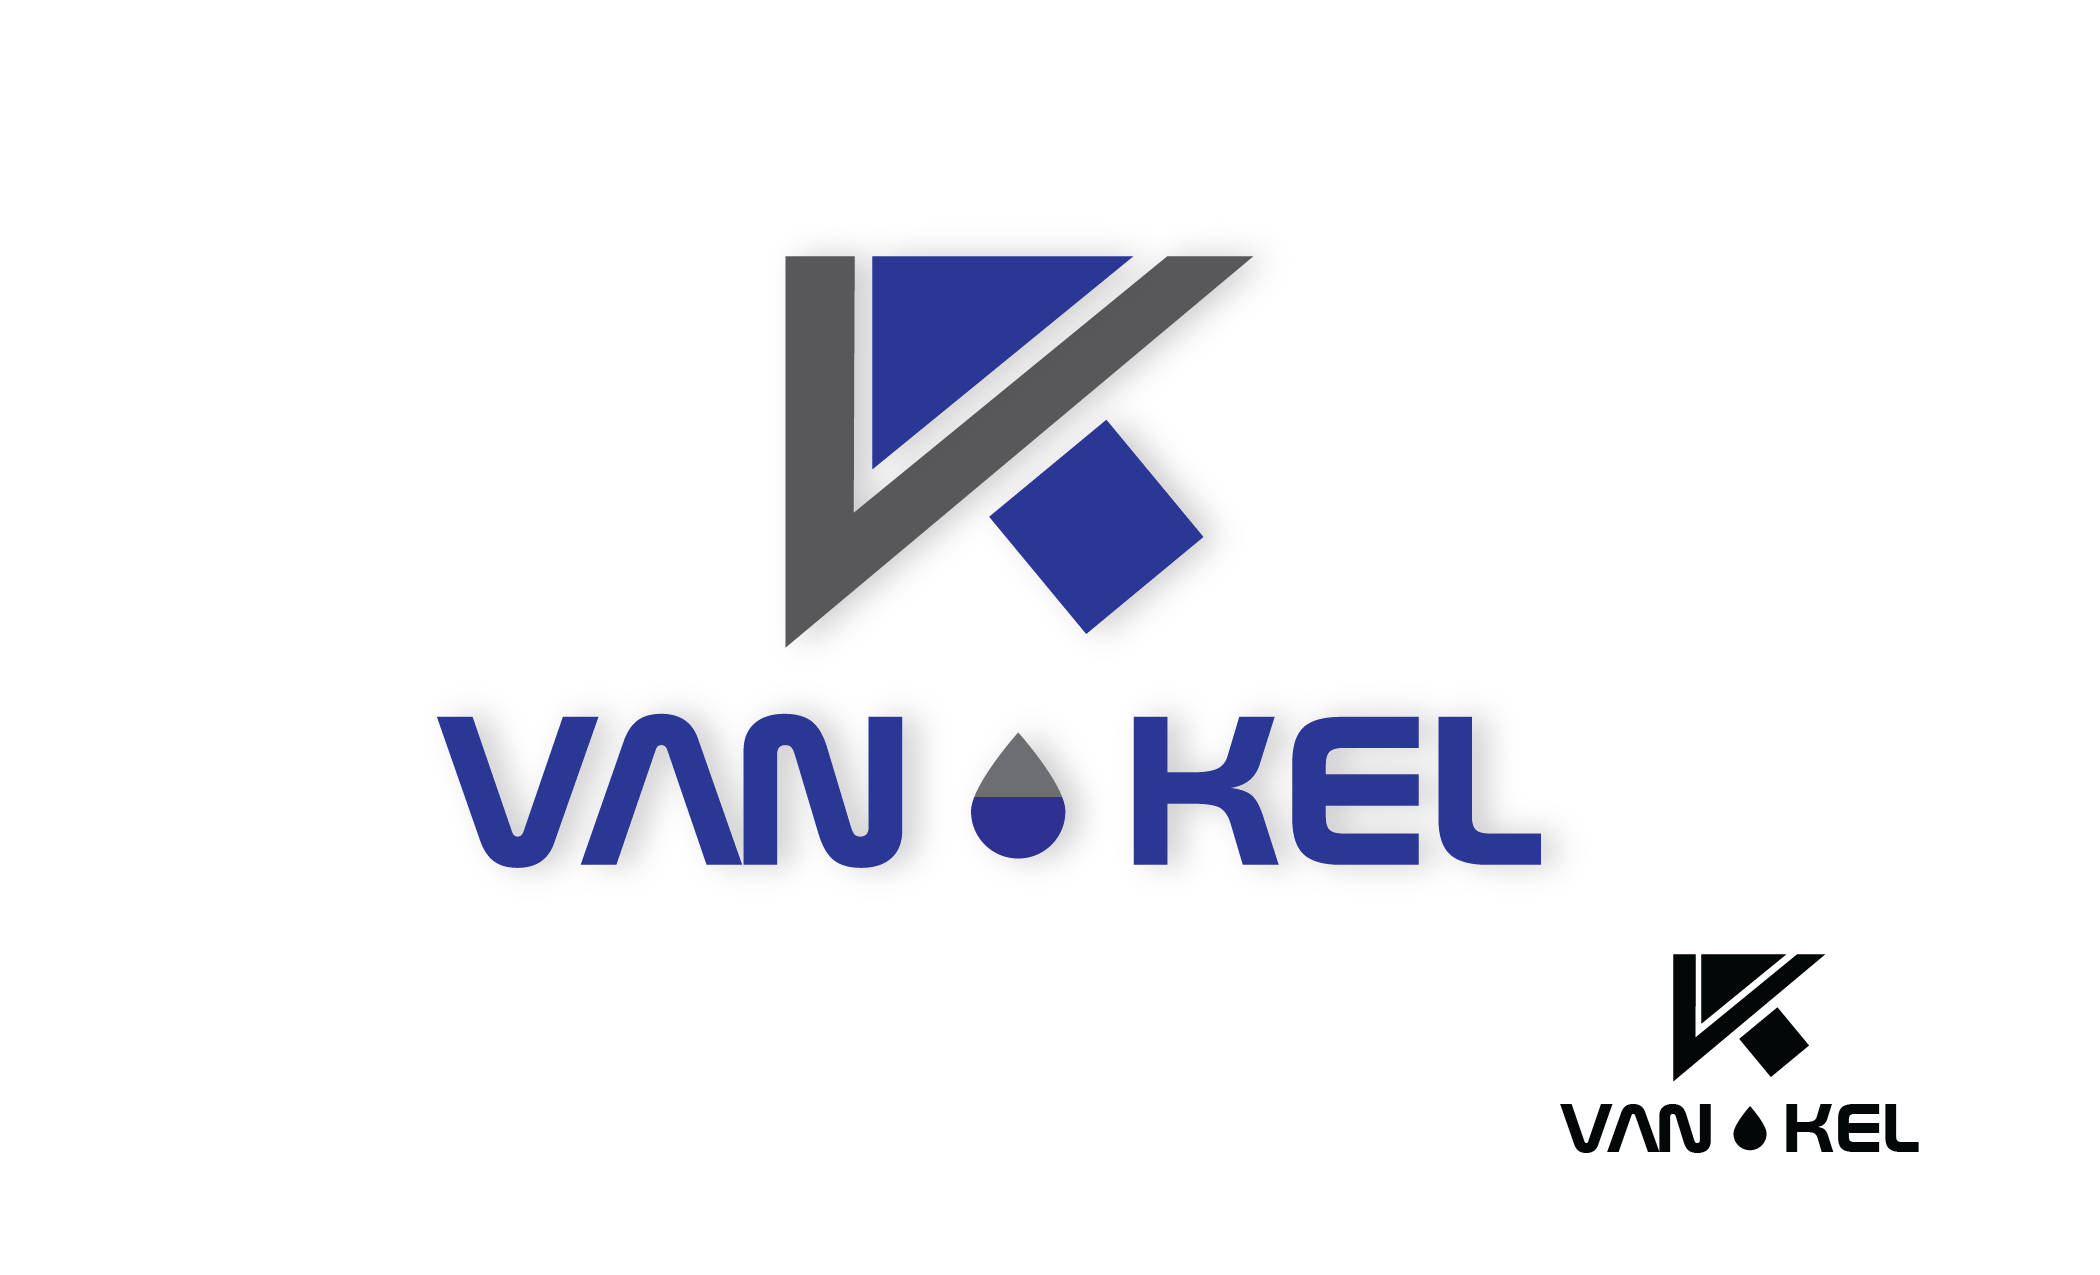 Logo Design by Private User - Entry No. 171 in the Logo Design Contest Van-Kel Irrigation Logo Design.